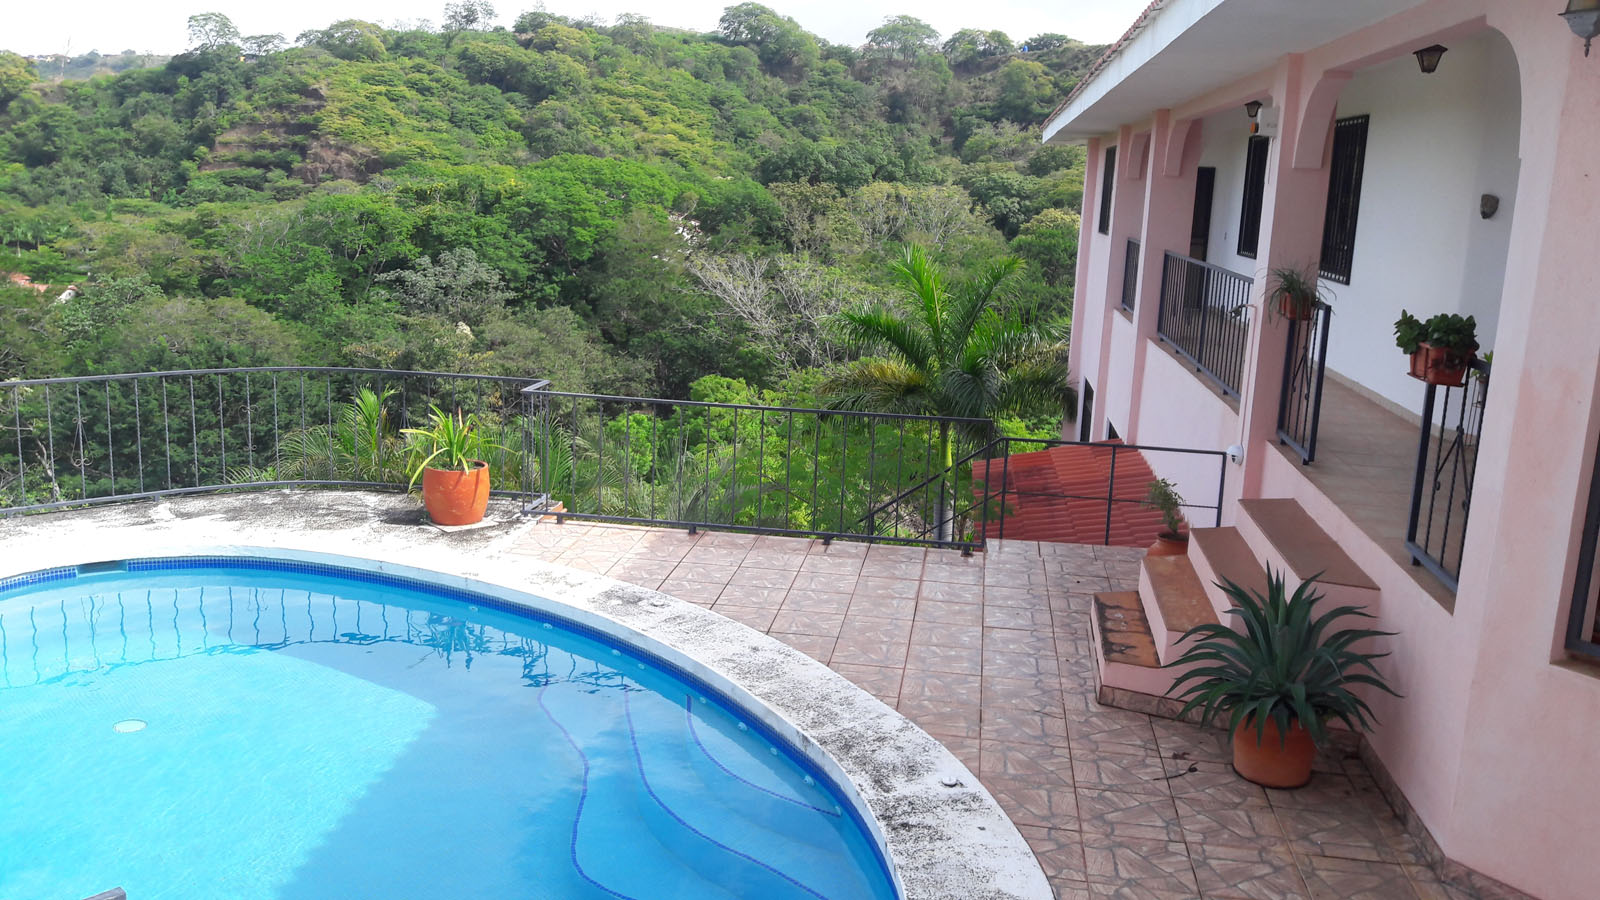 costa-rica-house-for-sale-coco38.jpg